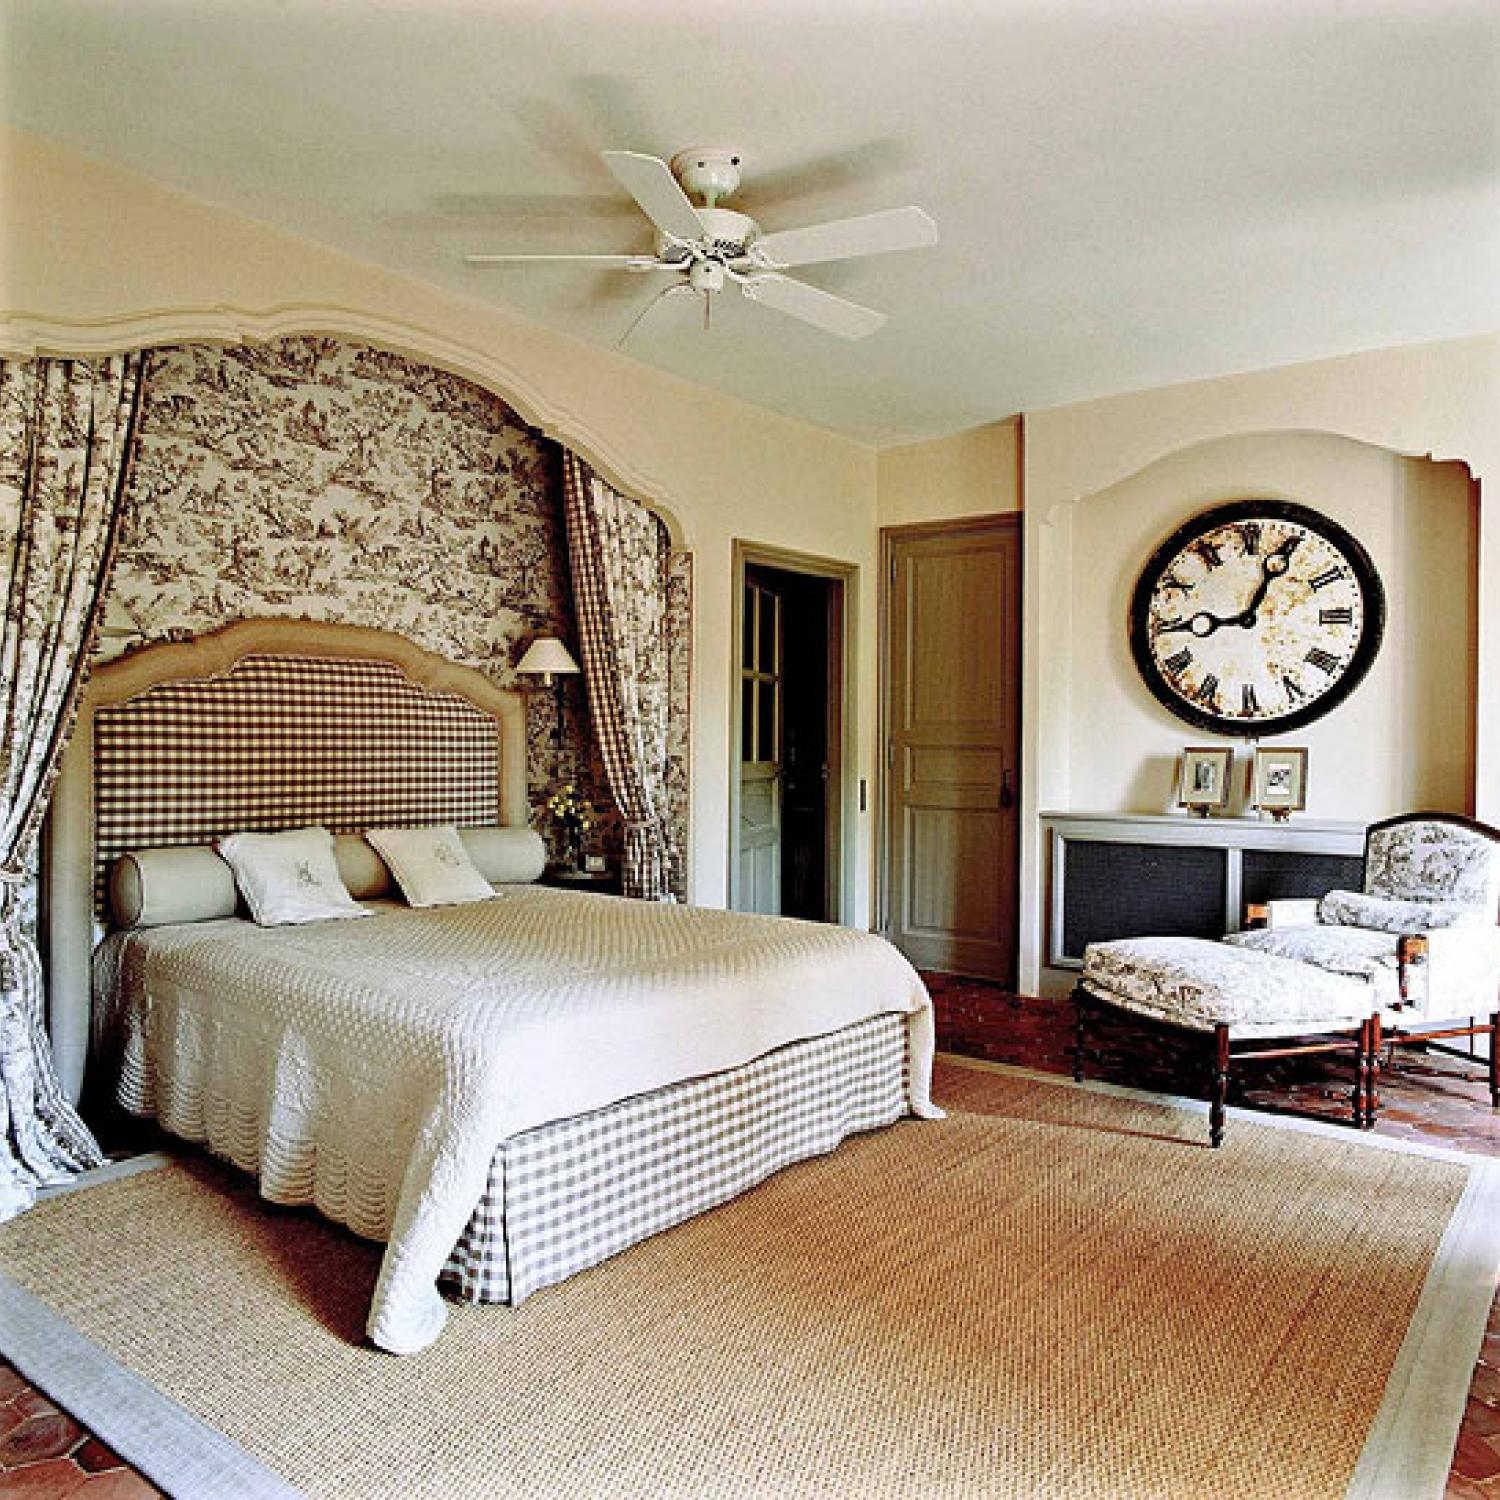 Bedroom Decorating Ideas Totally Toile & Bedroom Decorating Ideas: Totally Toile | Traditional Home